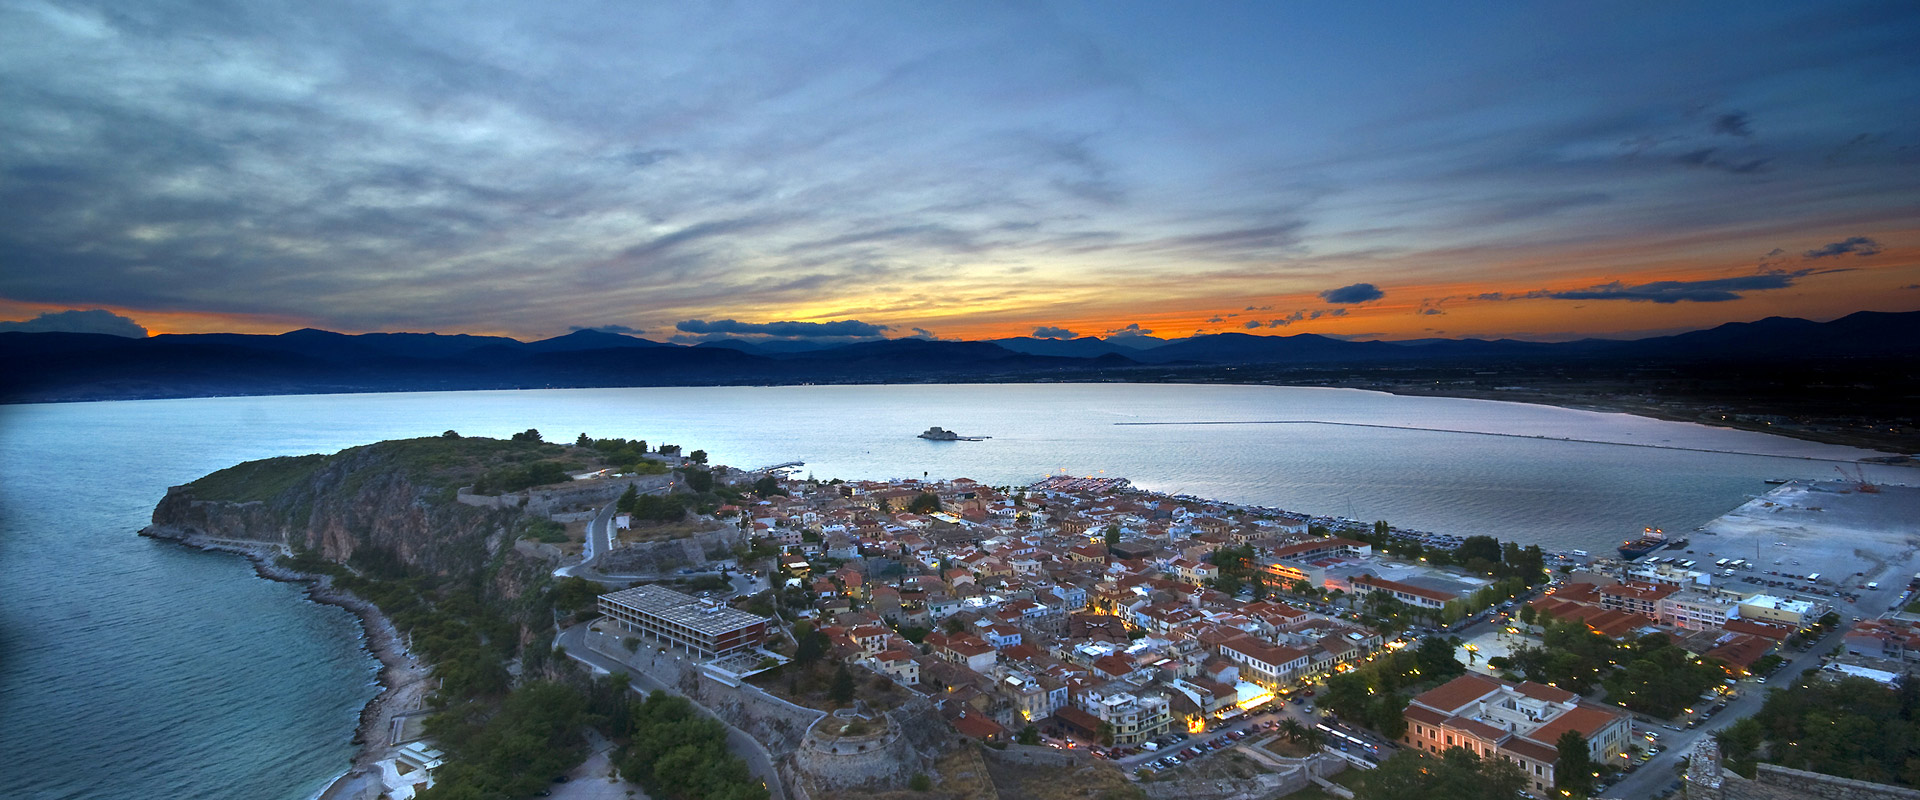 Nafplio town sunset - Private tours Athens Greece